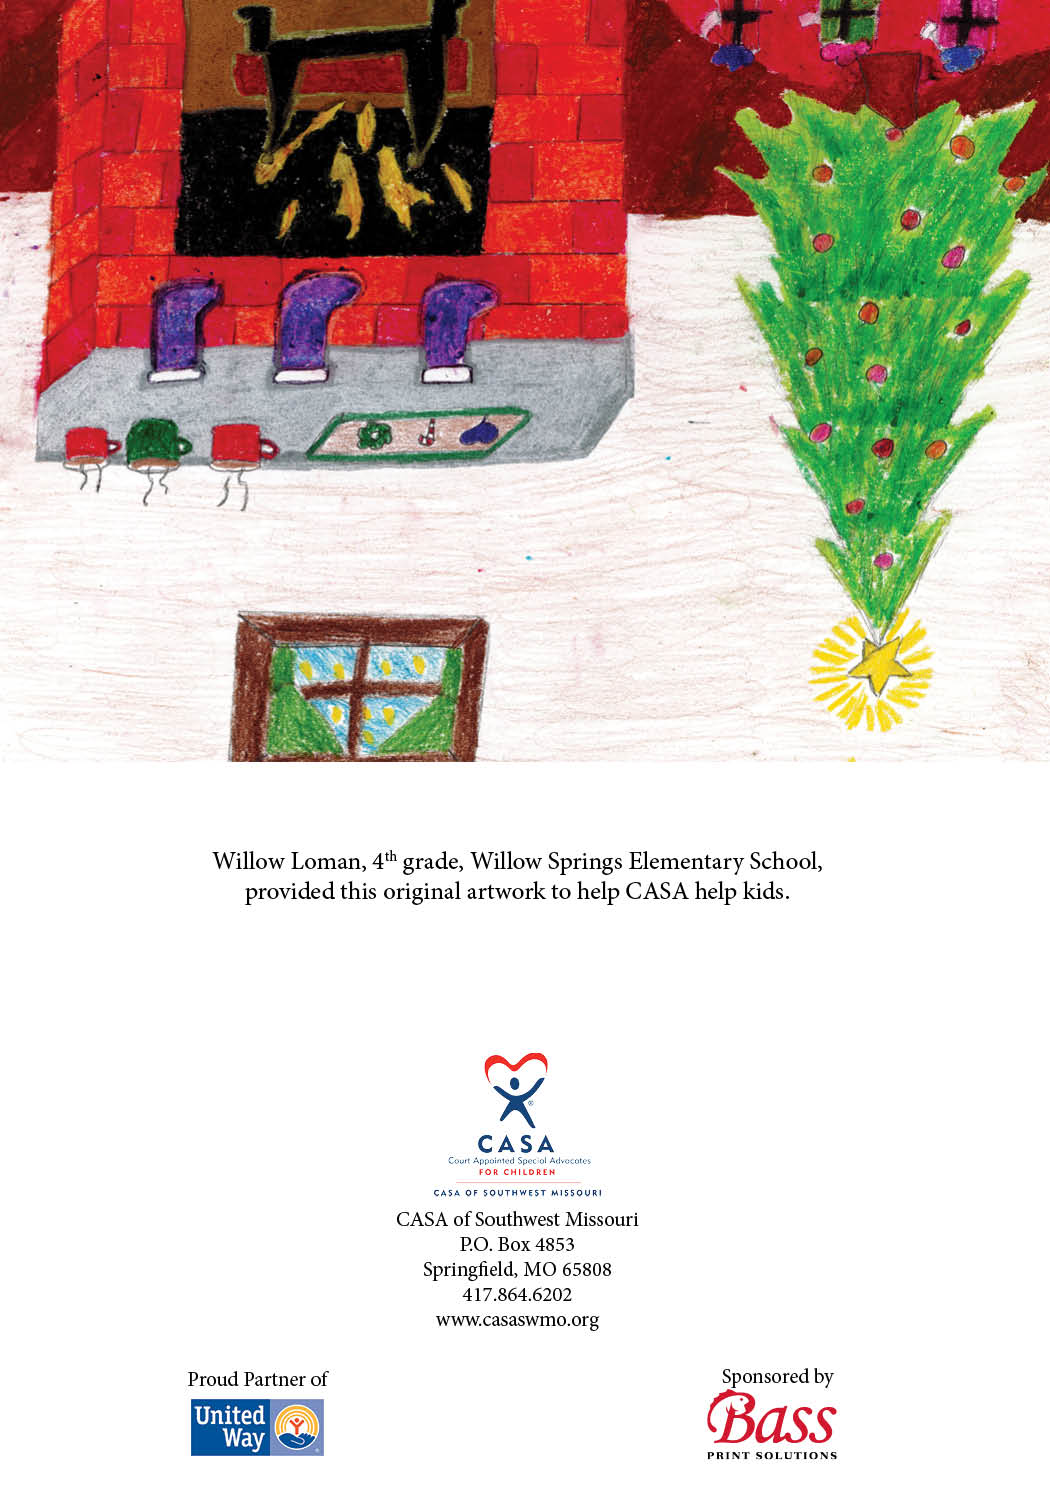 11 Fireplace - Willow Loman - 4th Grade - Willow Springs Elementary